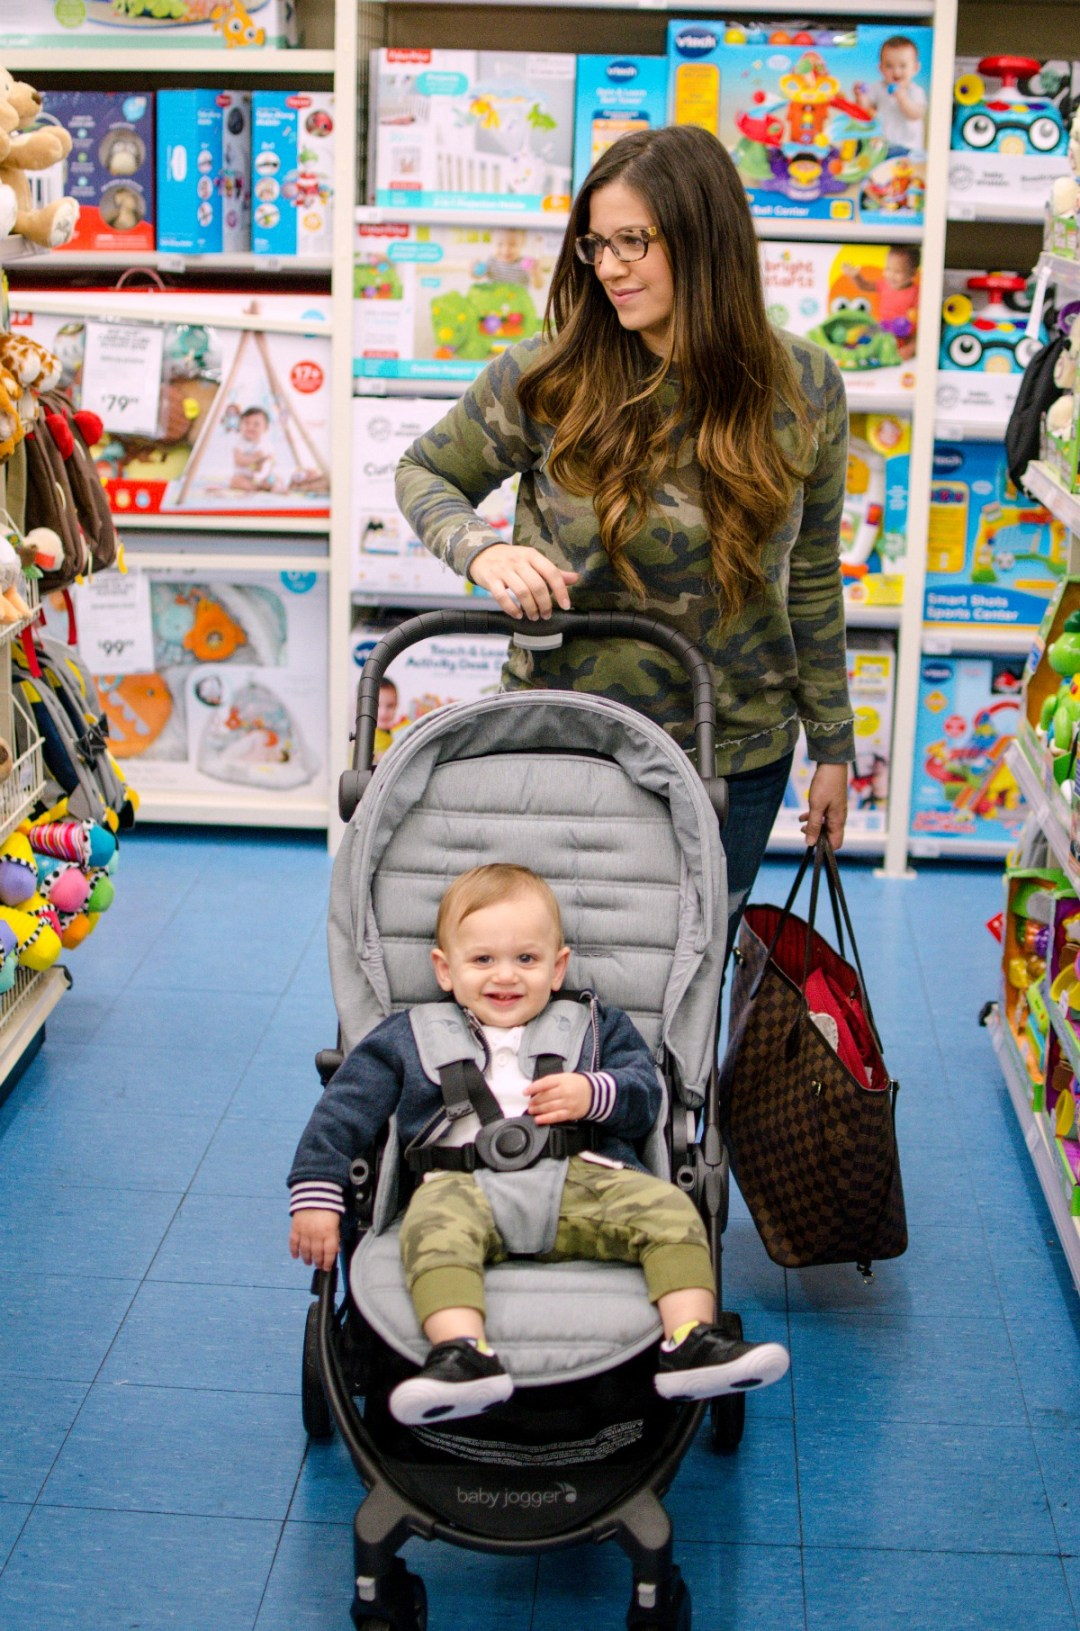 buybuy BABY toys, baby jogger stroller